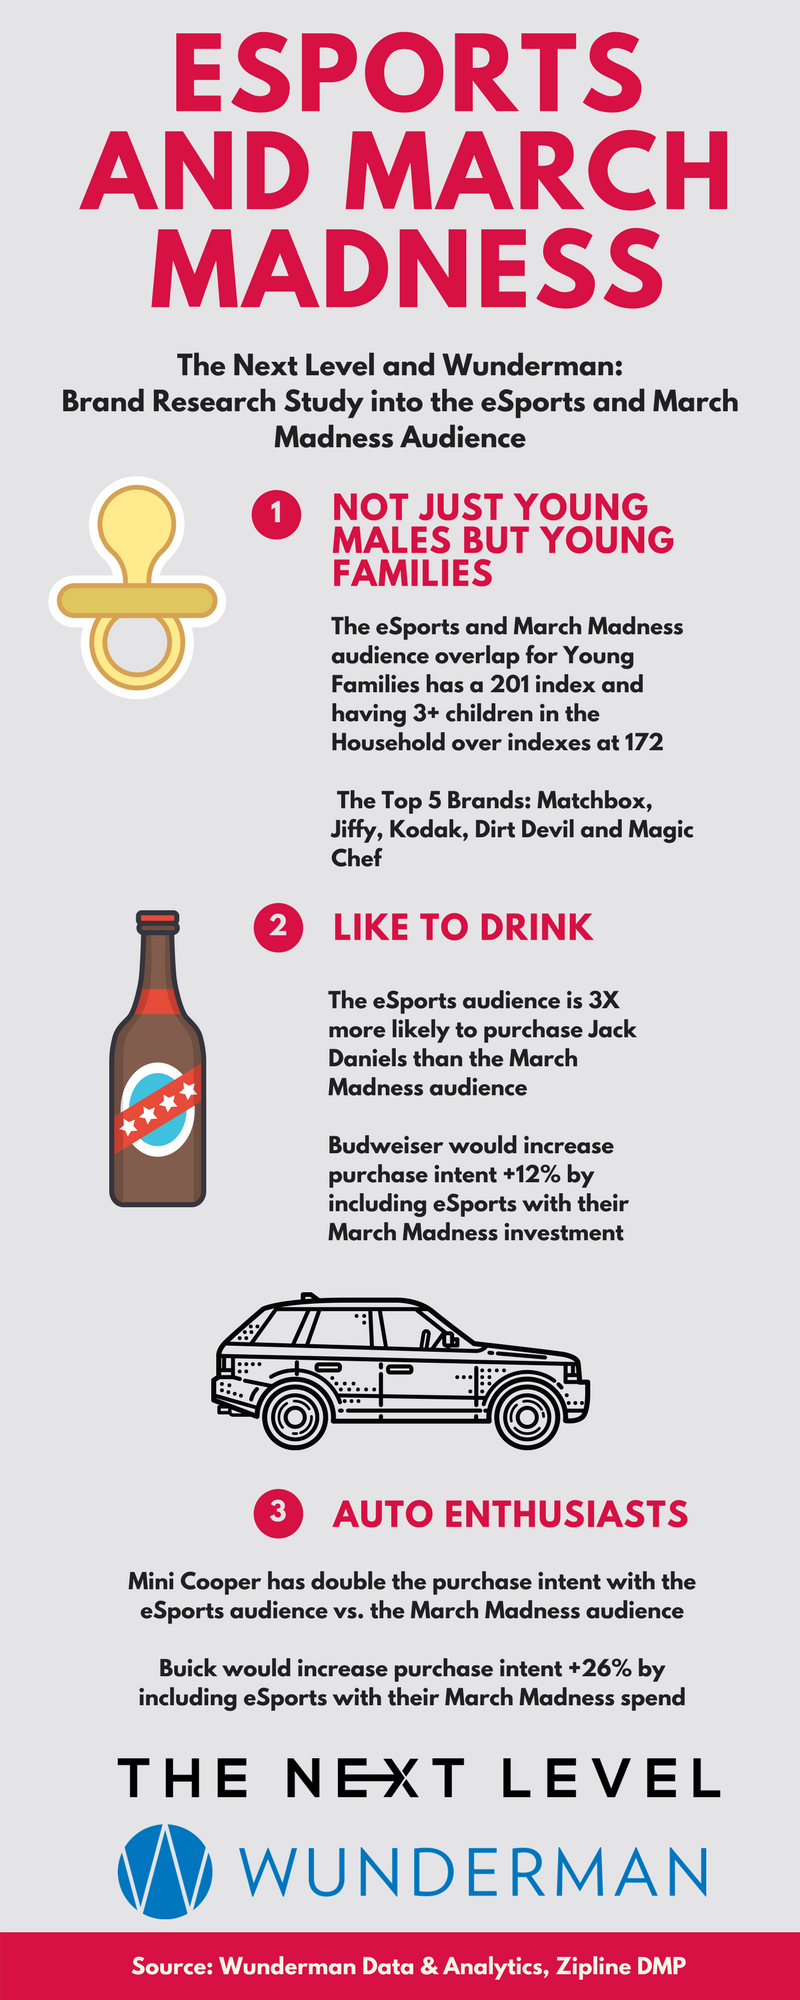 TNL Infographic 037: TNL and Wunderman eSports and March Madness Brand Study